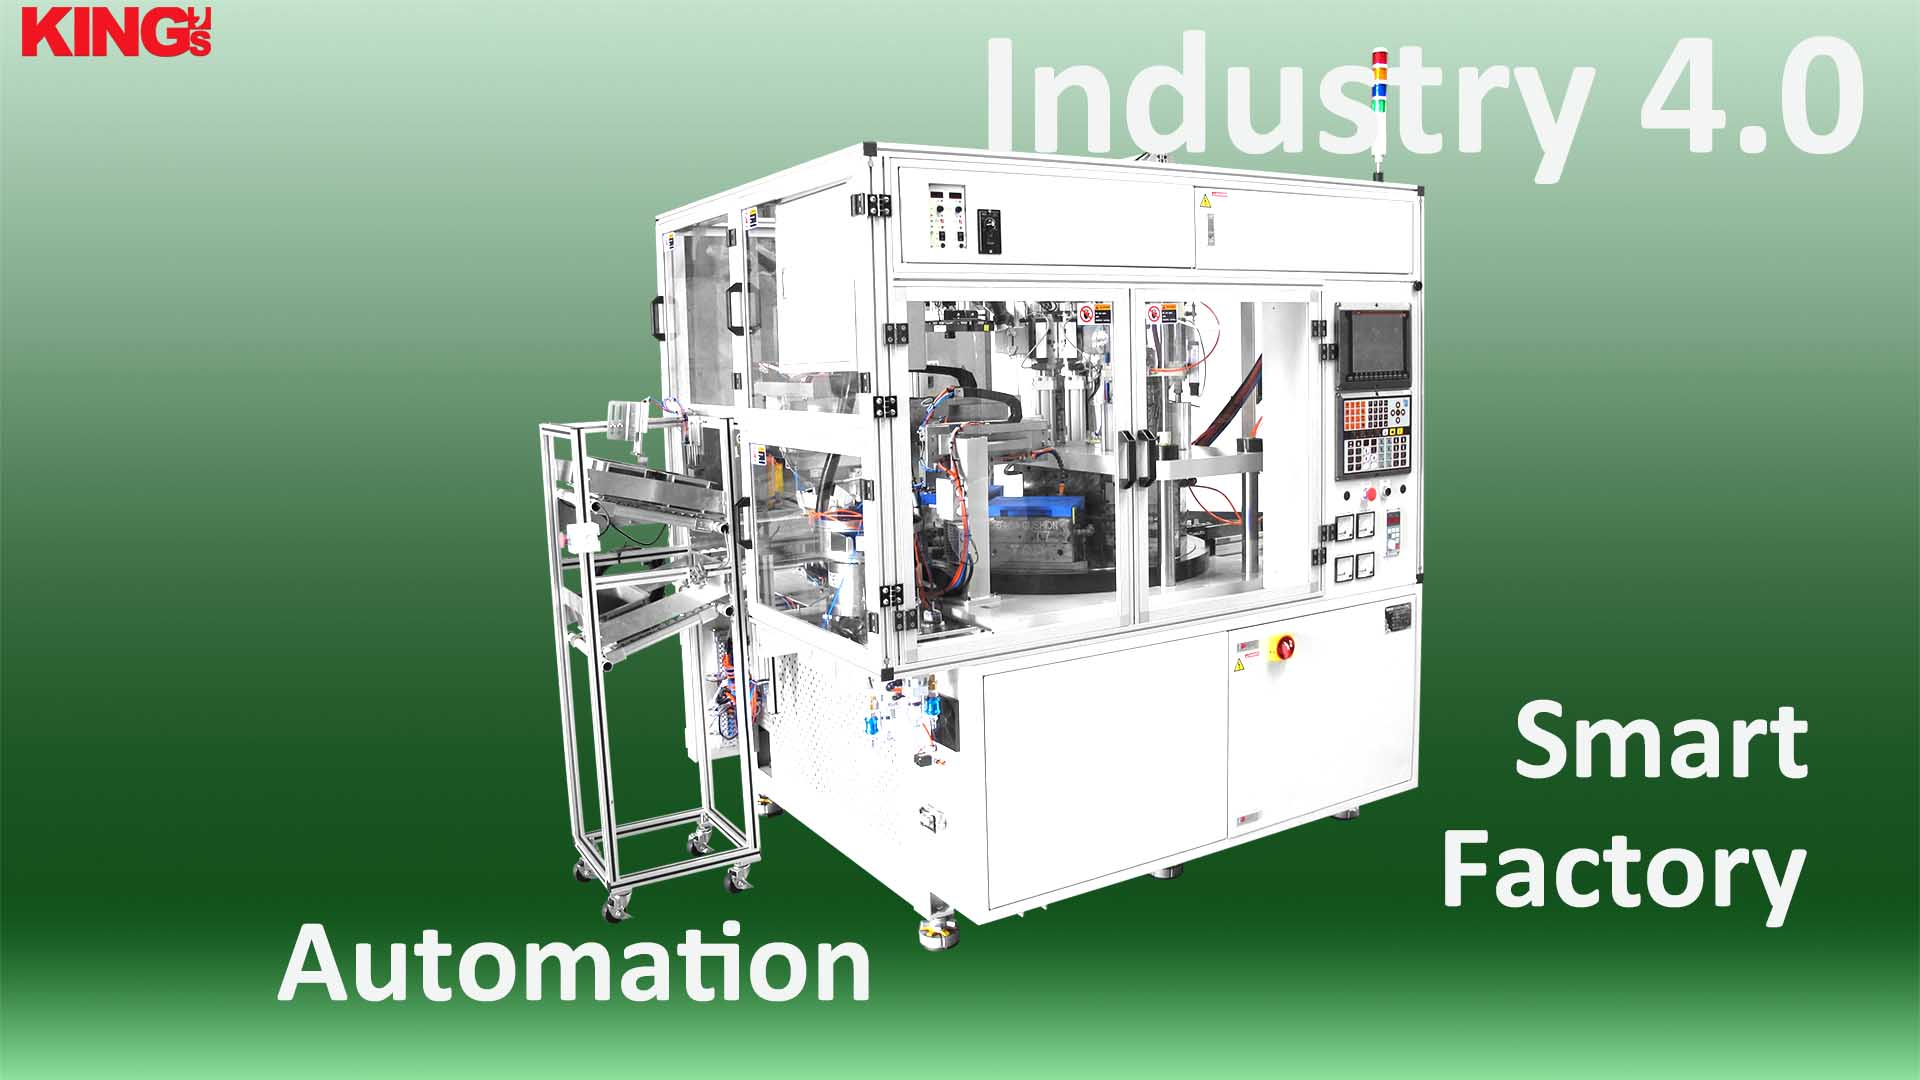 High customization of automation machinery